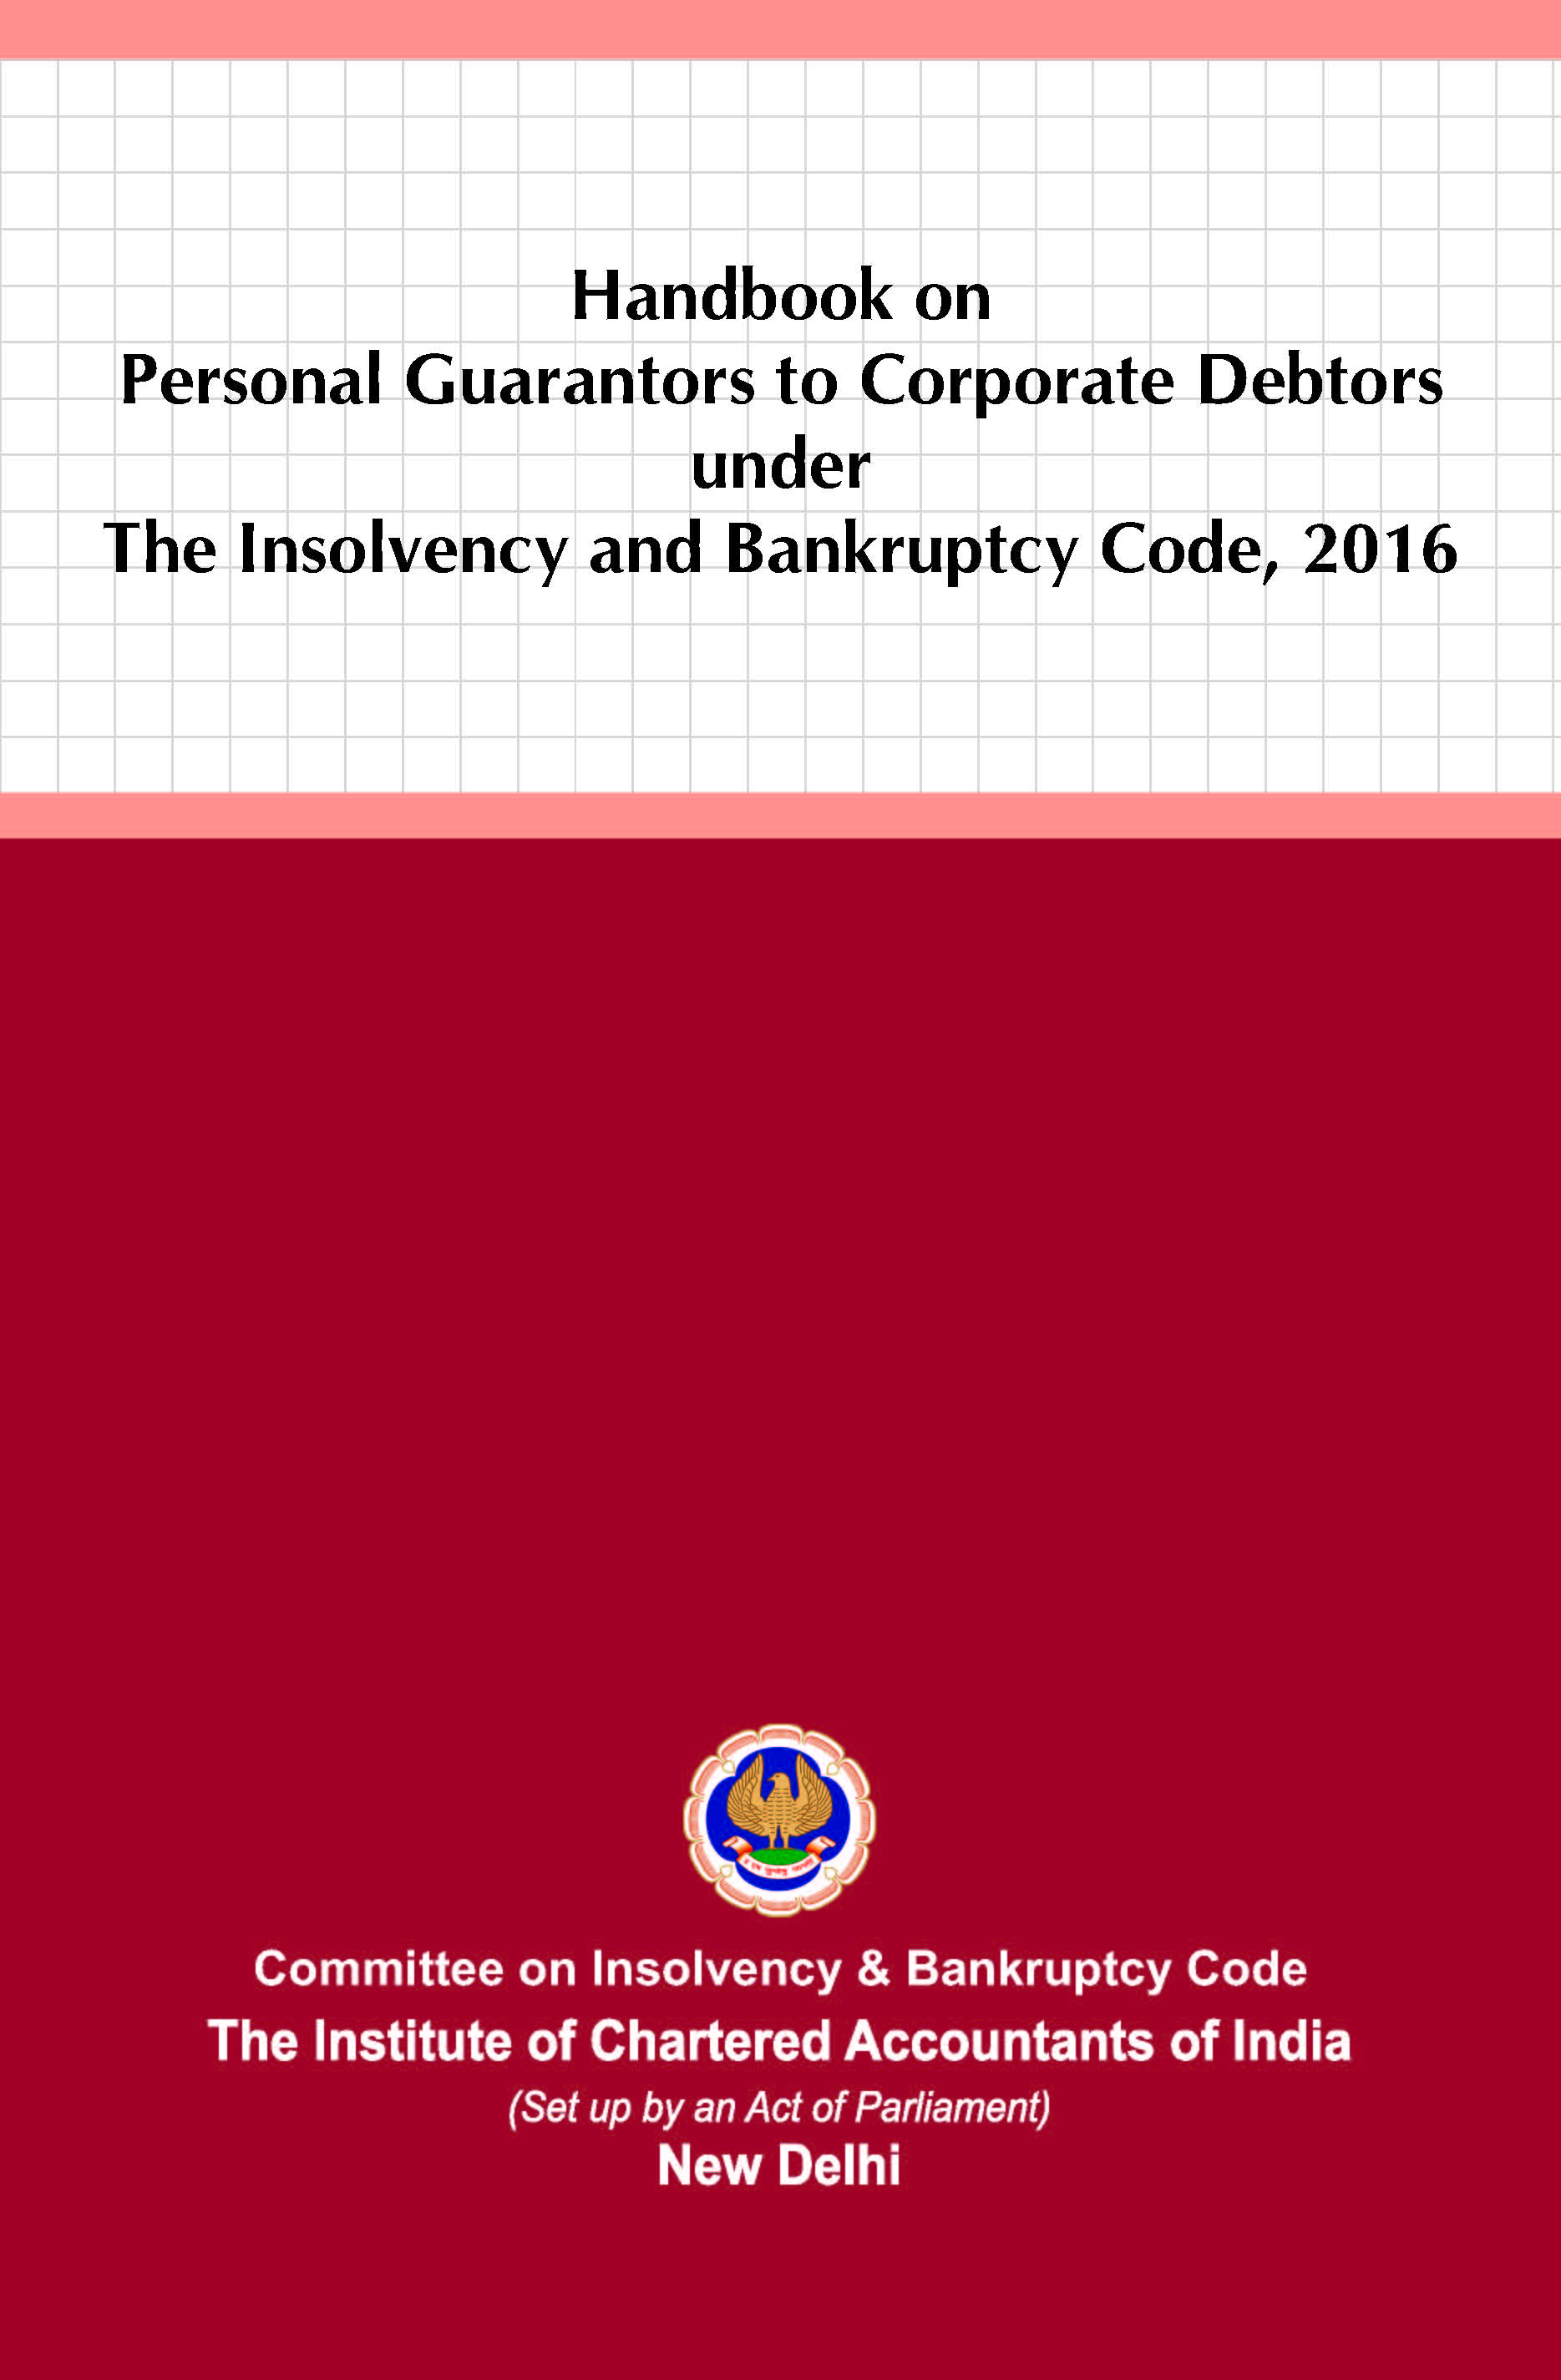 Handbook on Personal Guarantors to Corporate Debtors under The Insolvency and Bankruptcy Code, 2016 (June, 2021)